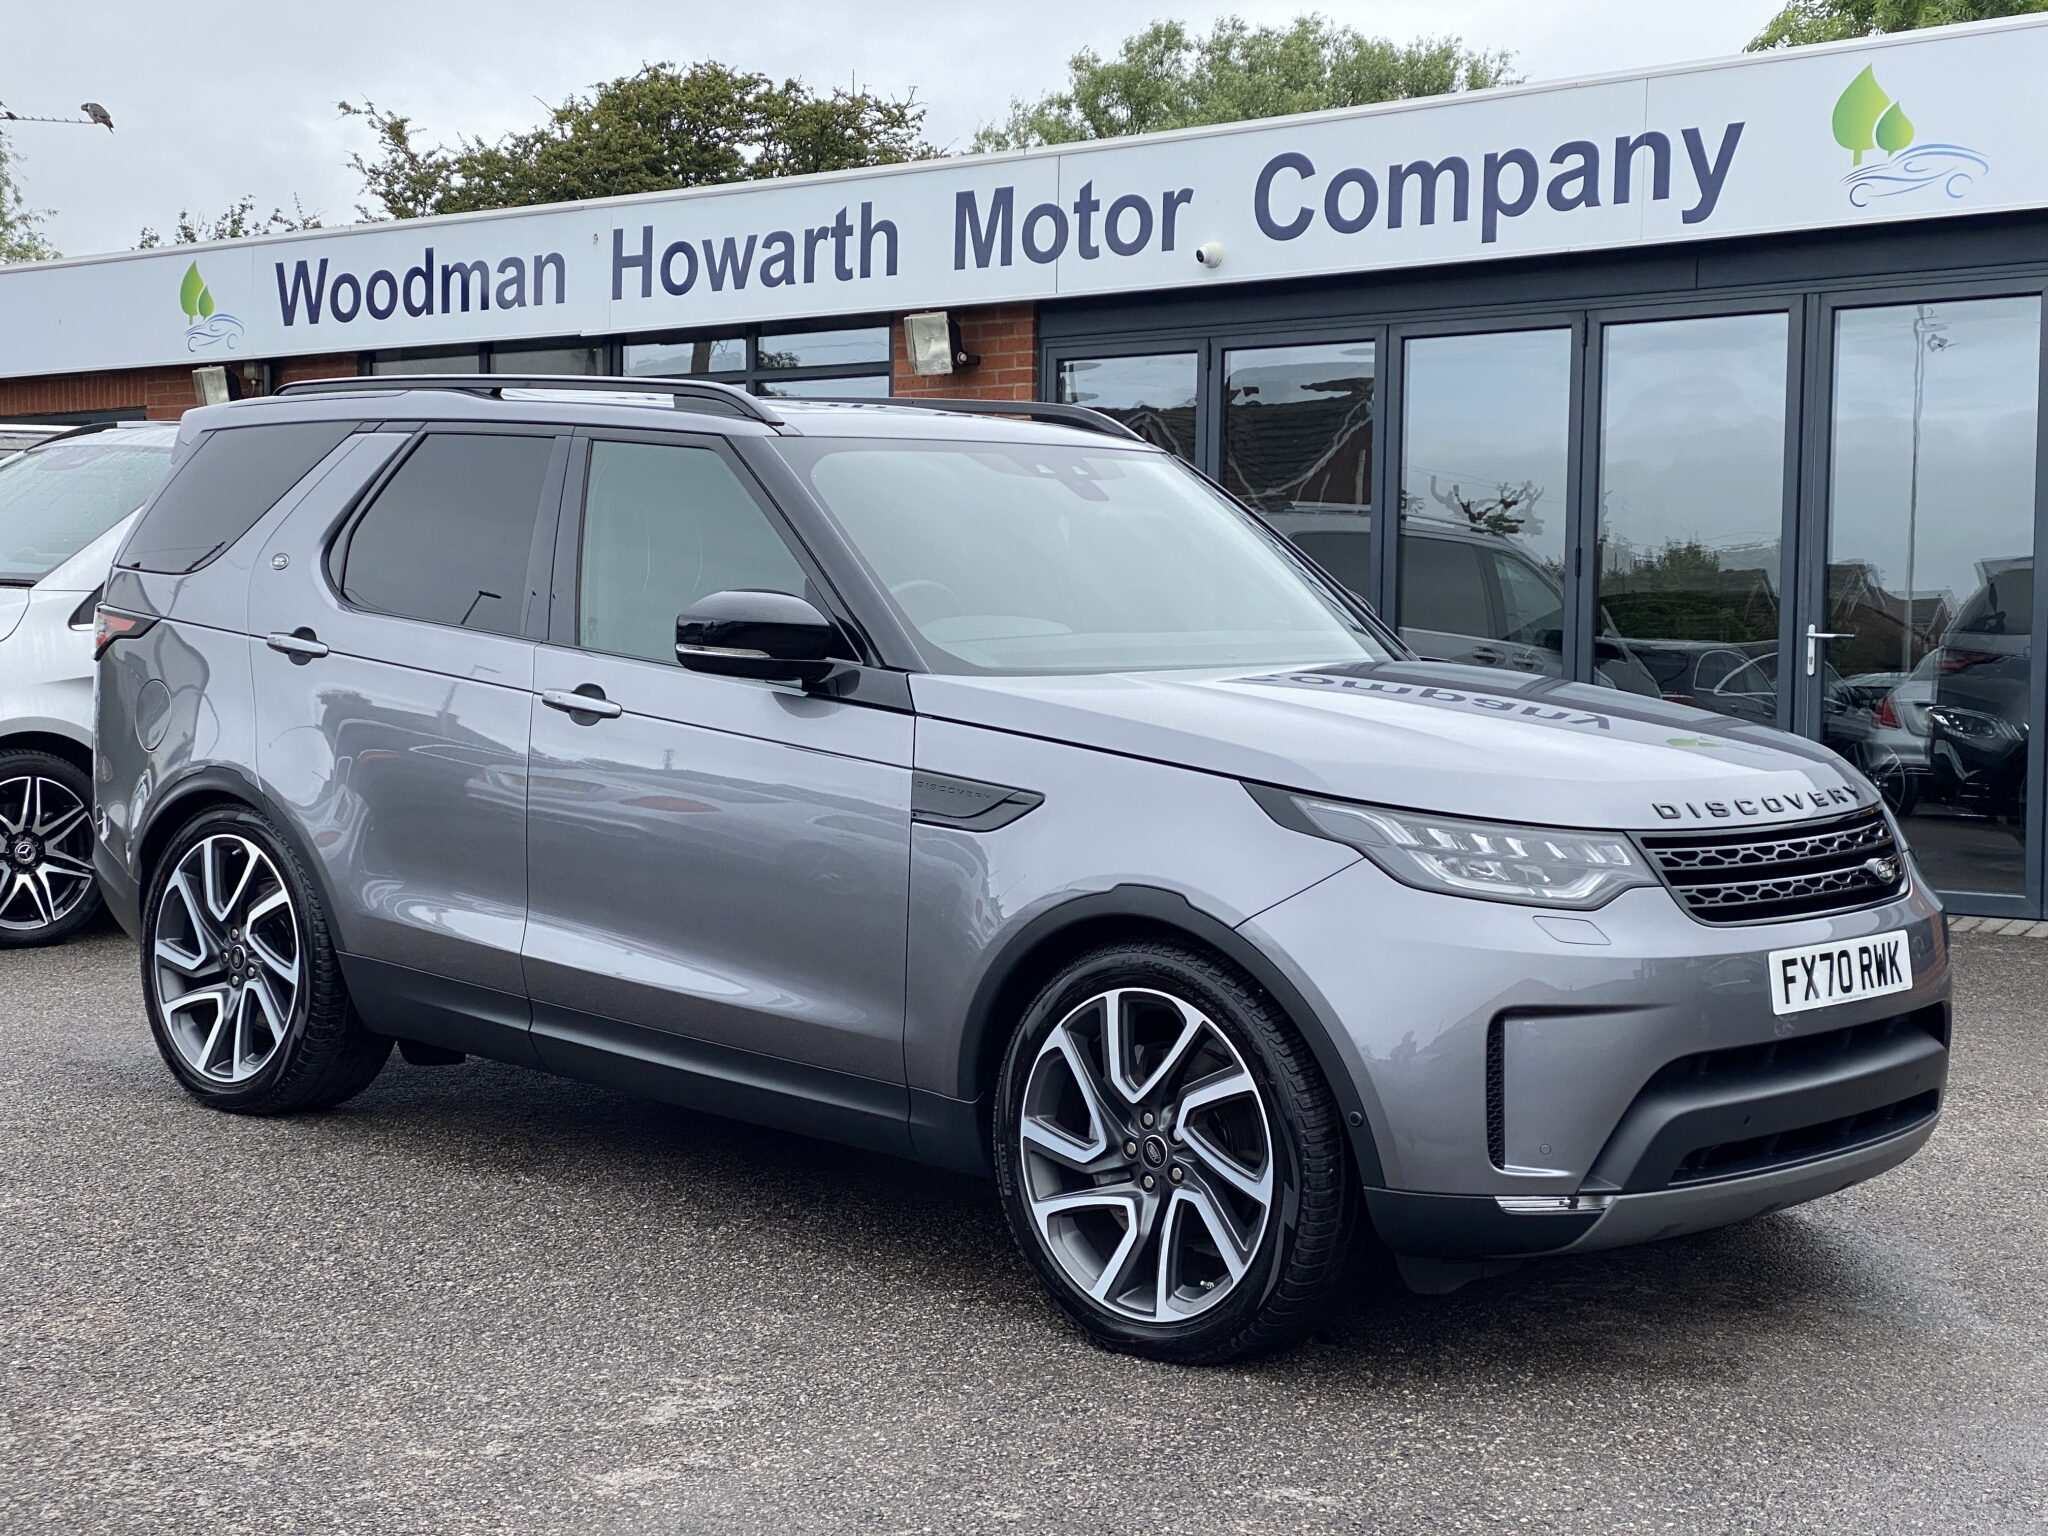 2020 70 LANDROVER DISCOVERY 3.0SD V6 HSE AUTO COMMERCIAL 22